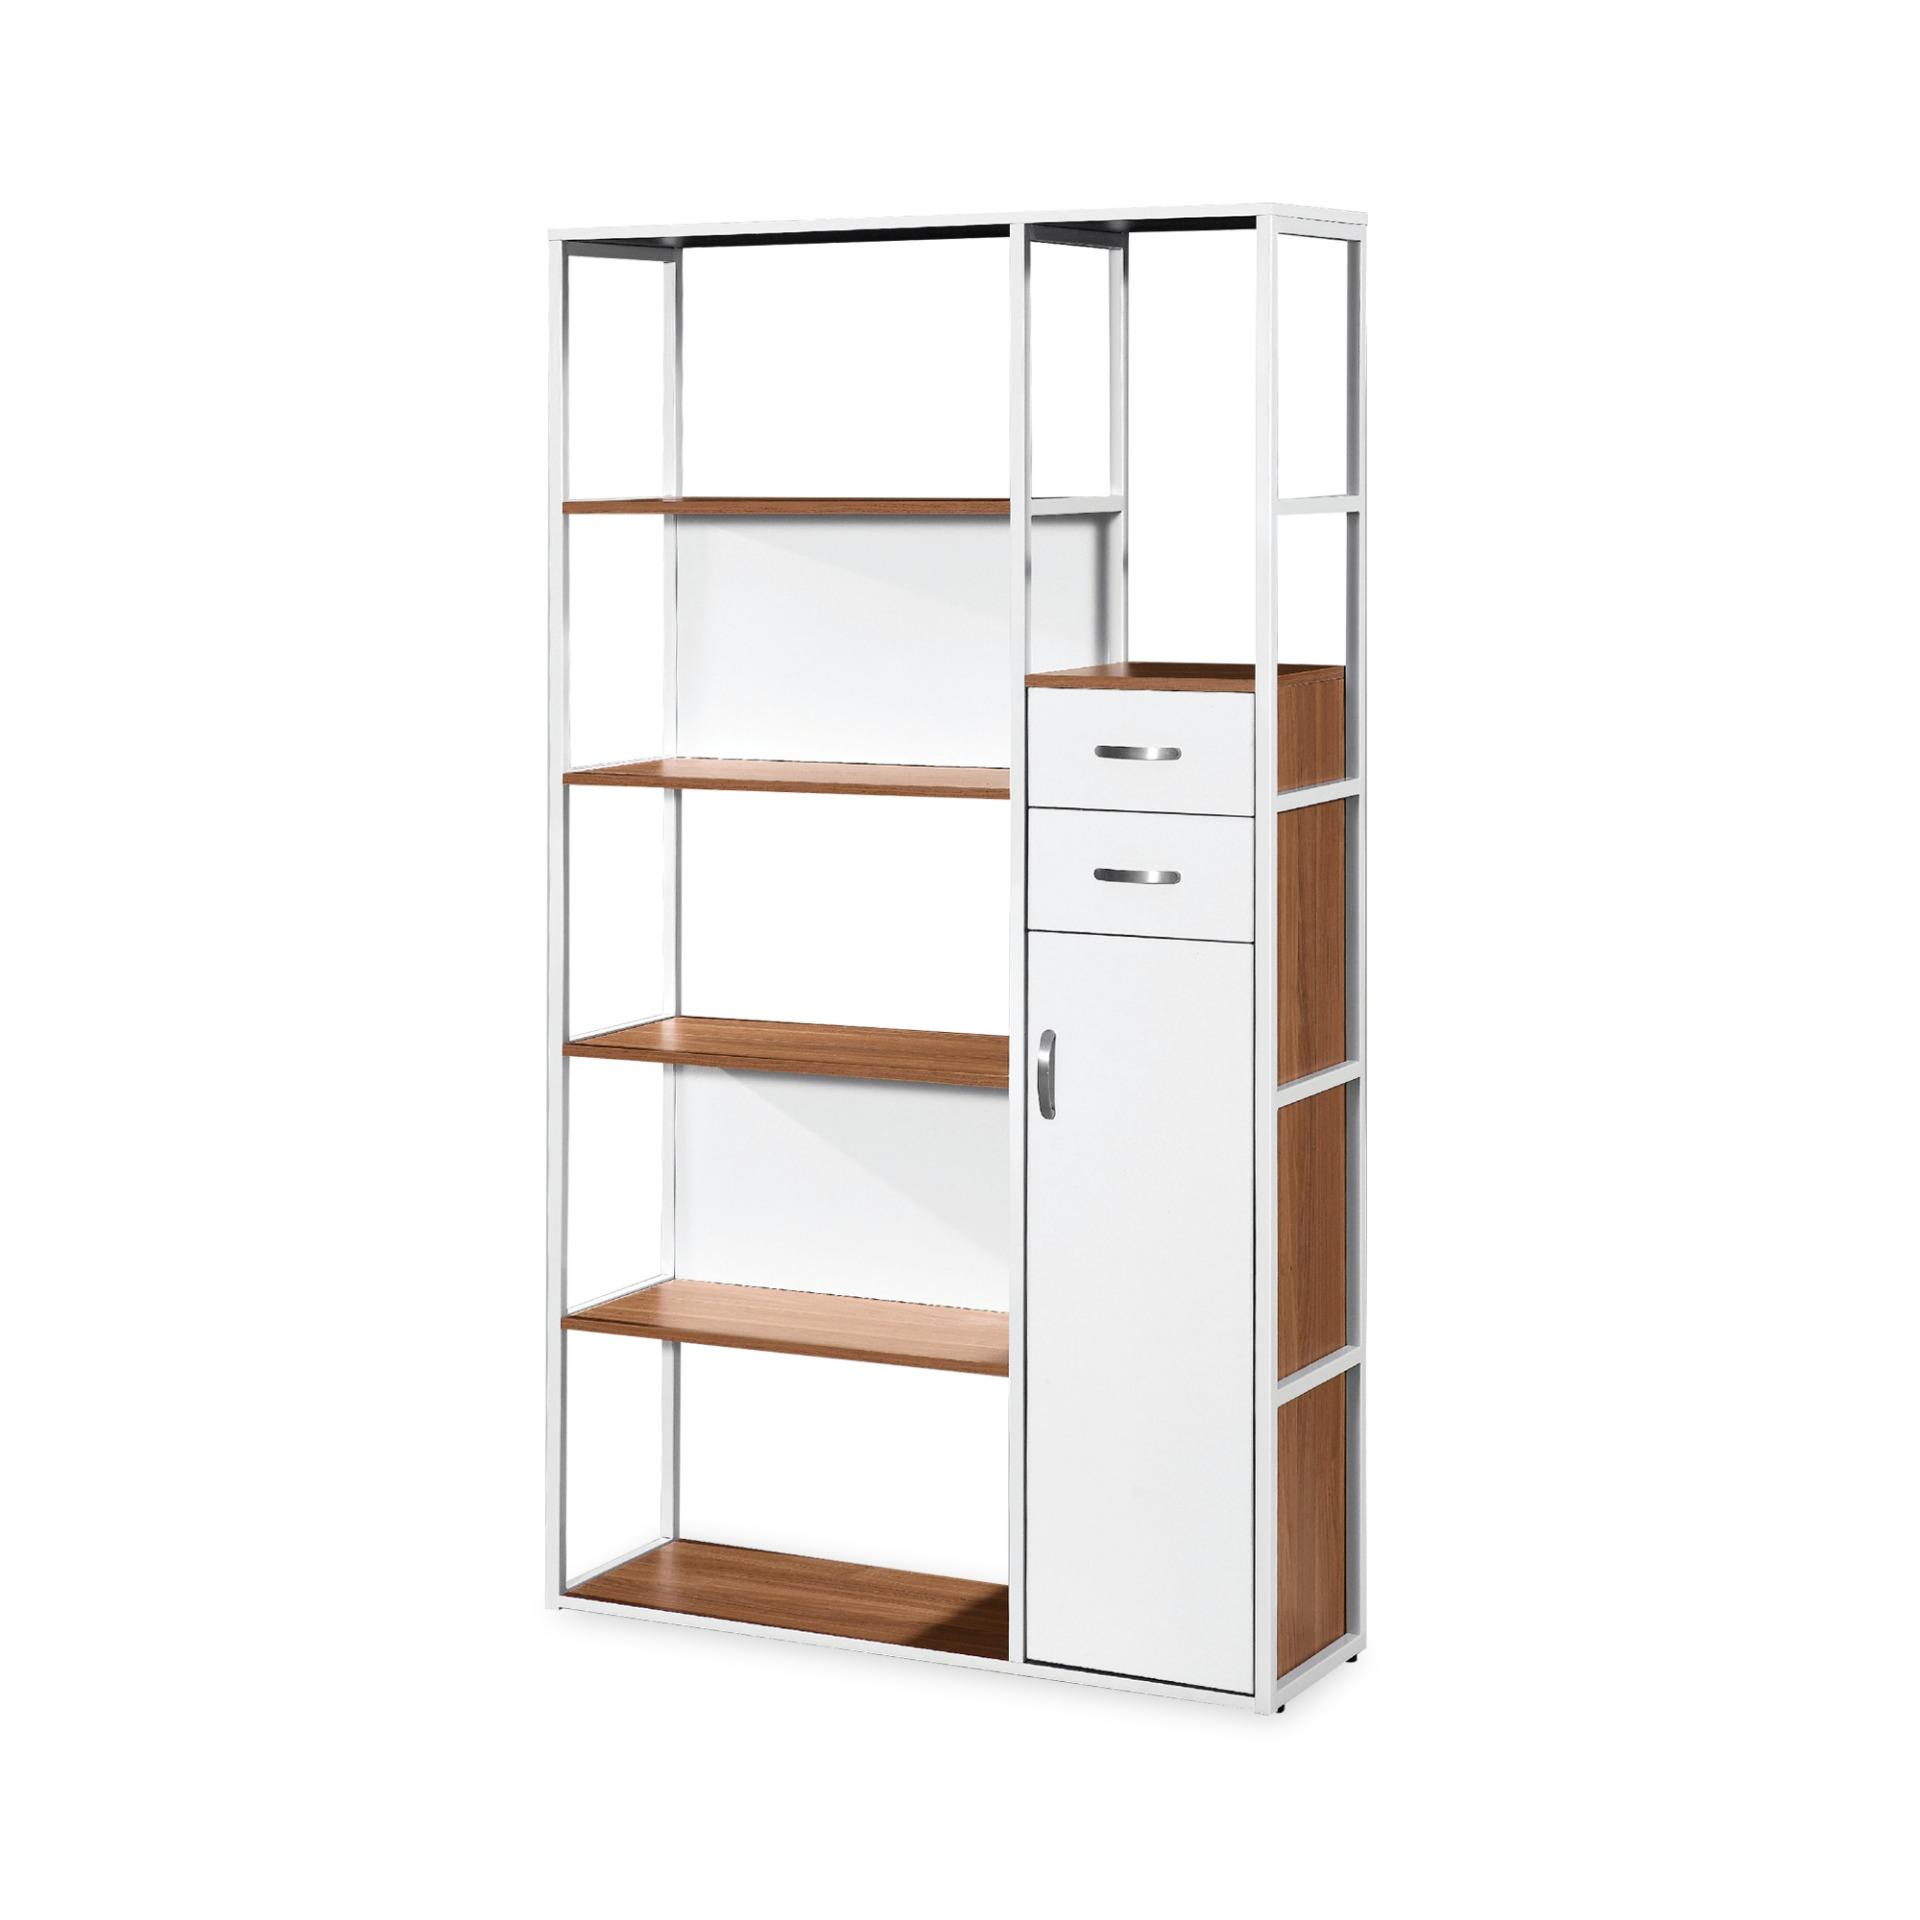 Amore Book Cabinet With Storage Shelves (FREE DELIVERY)(FREE ASSEMBLY)